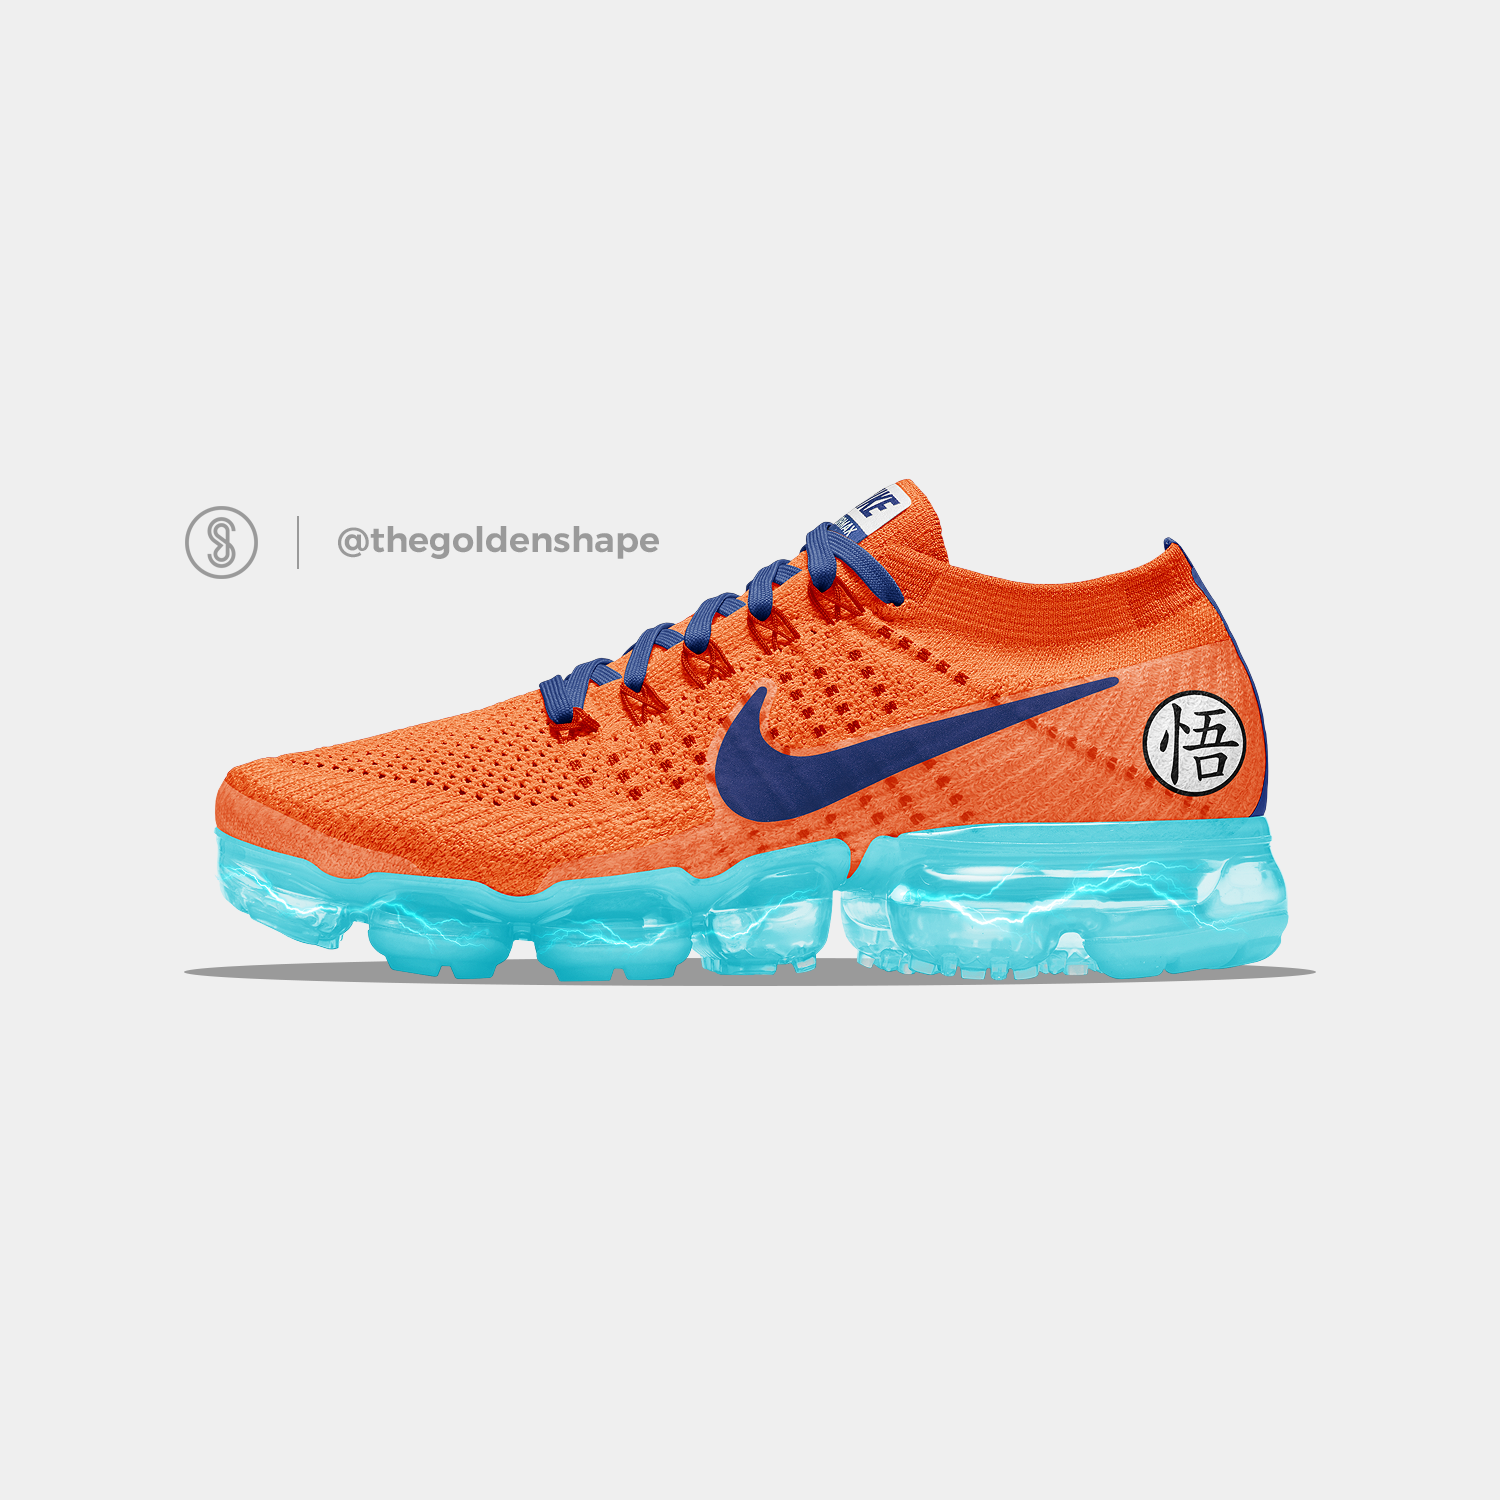 Dragon Bluethe Saiyan Goku Ball Son Nike Super Uxzpik X Vapormax bY7Ig6yvf